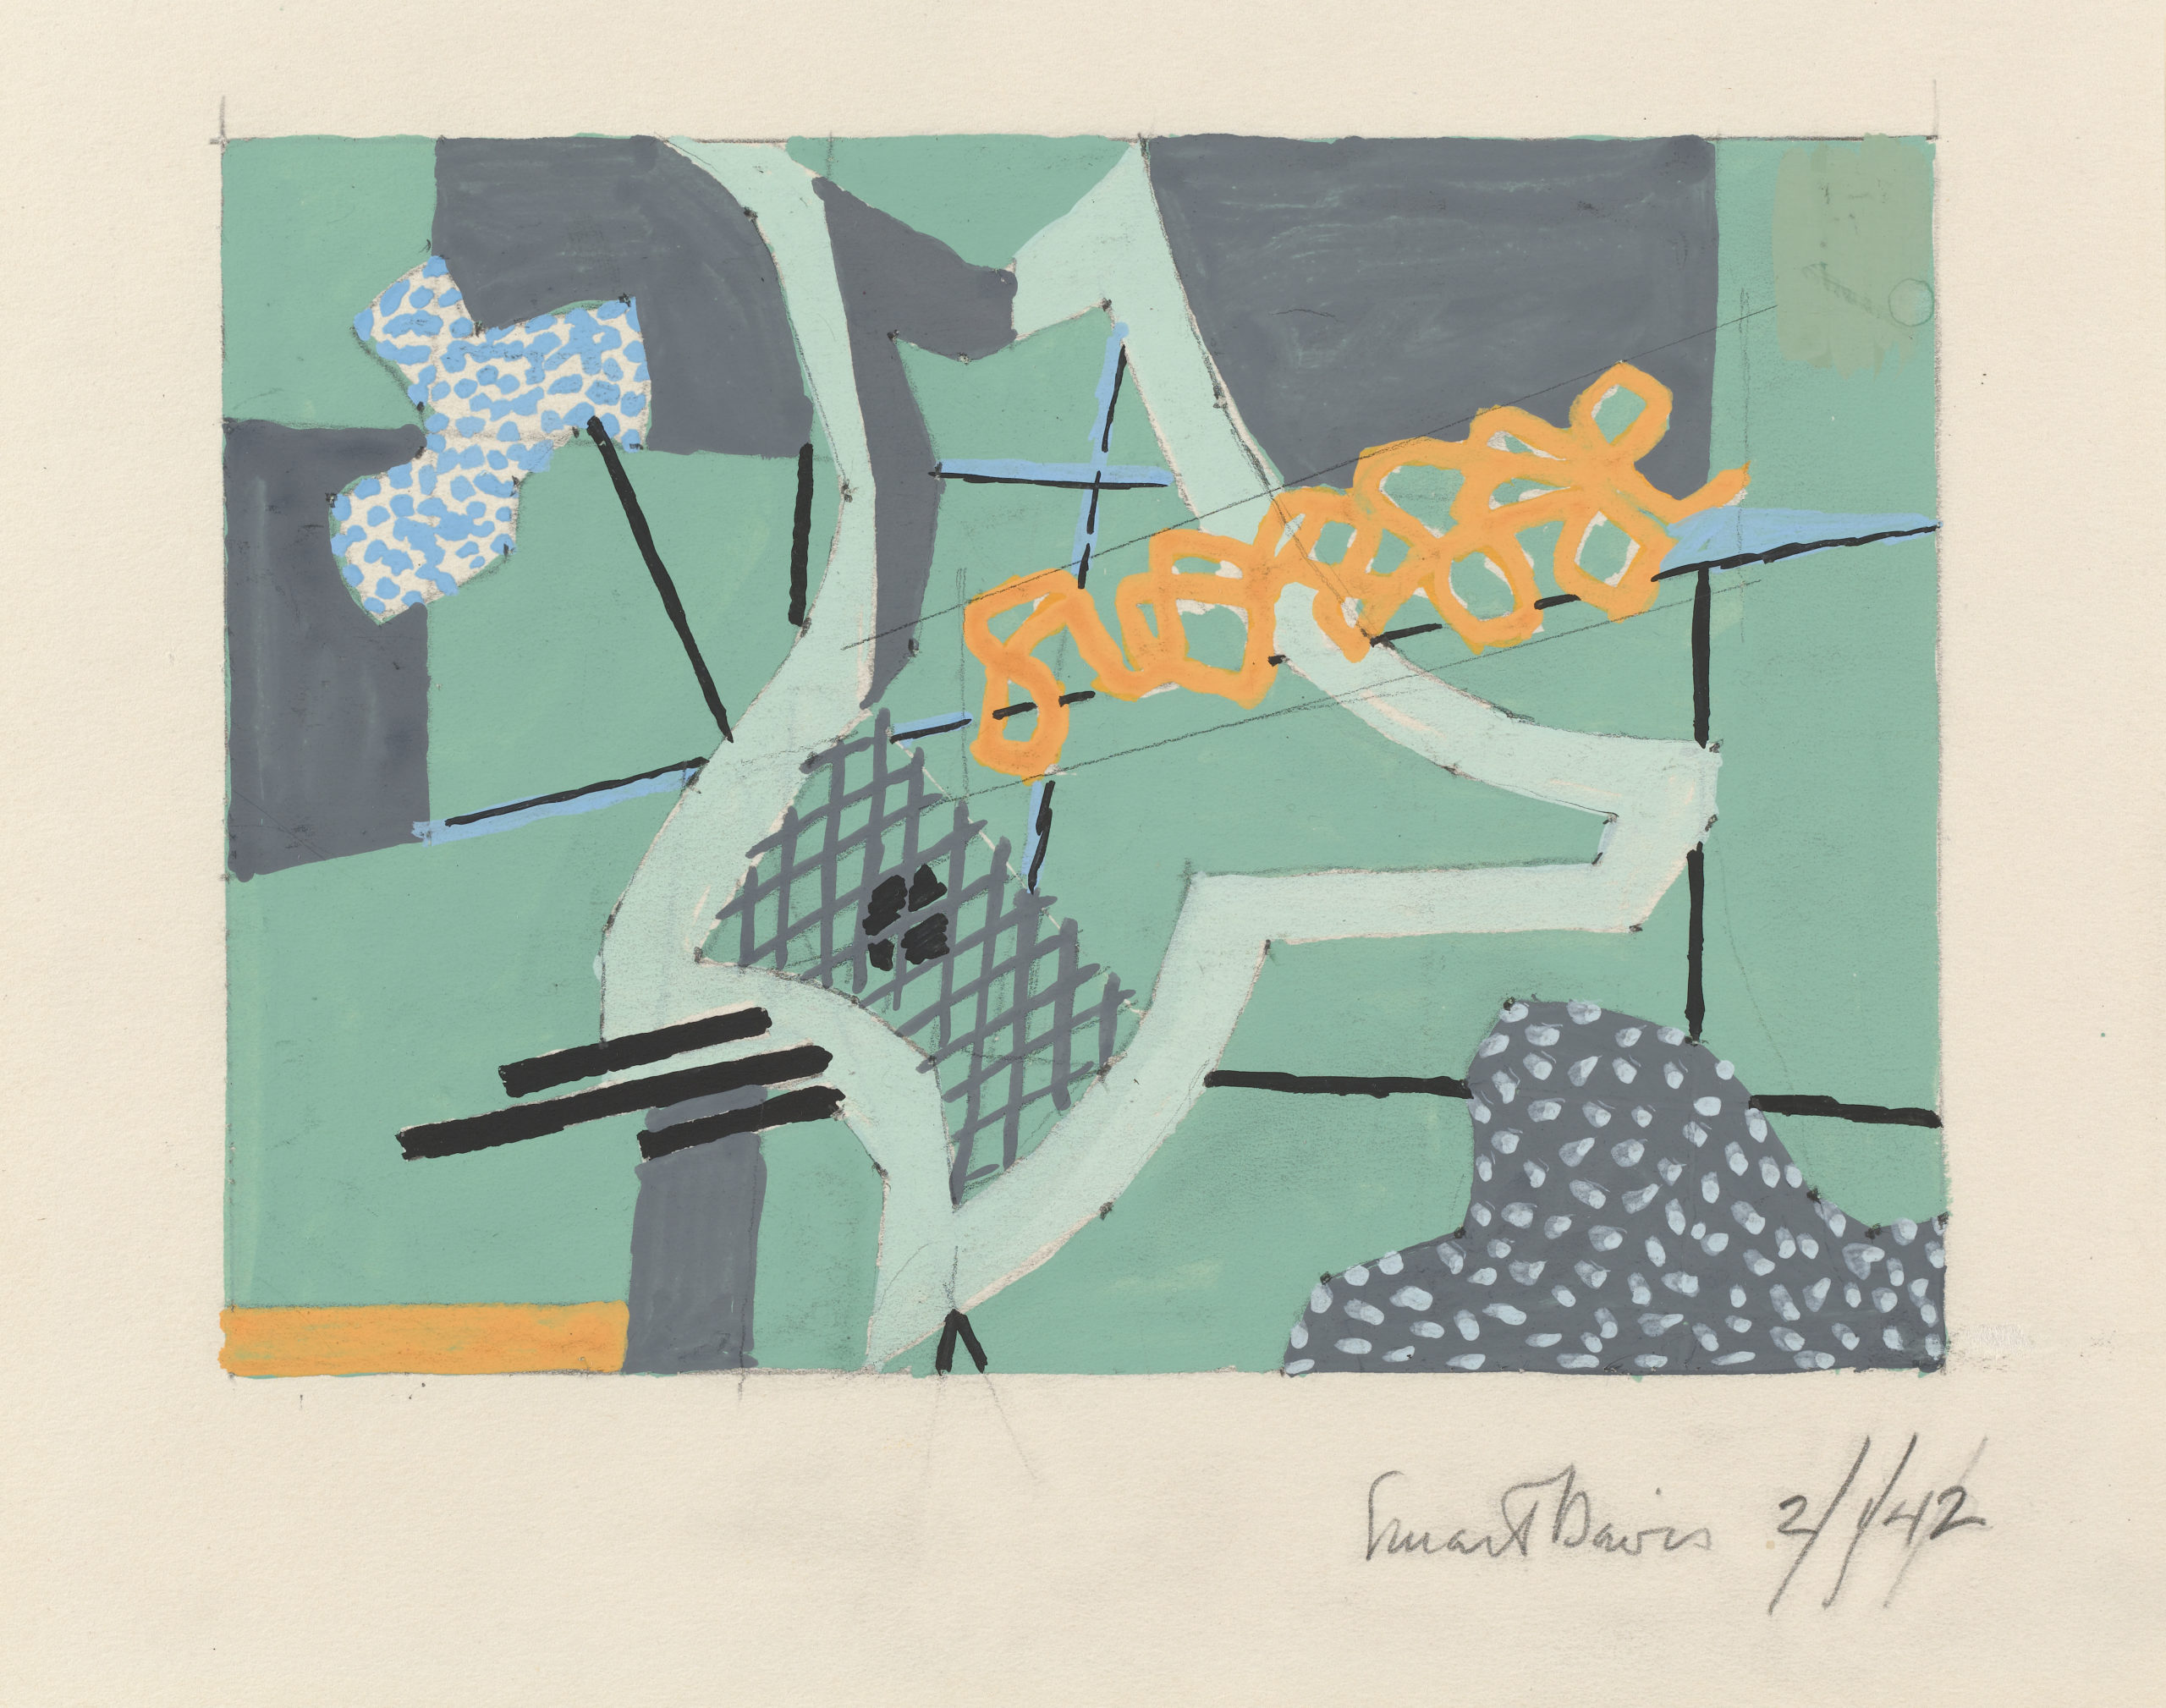 Abstract shapes in grey and light green accented with pastel blue and orange.